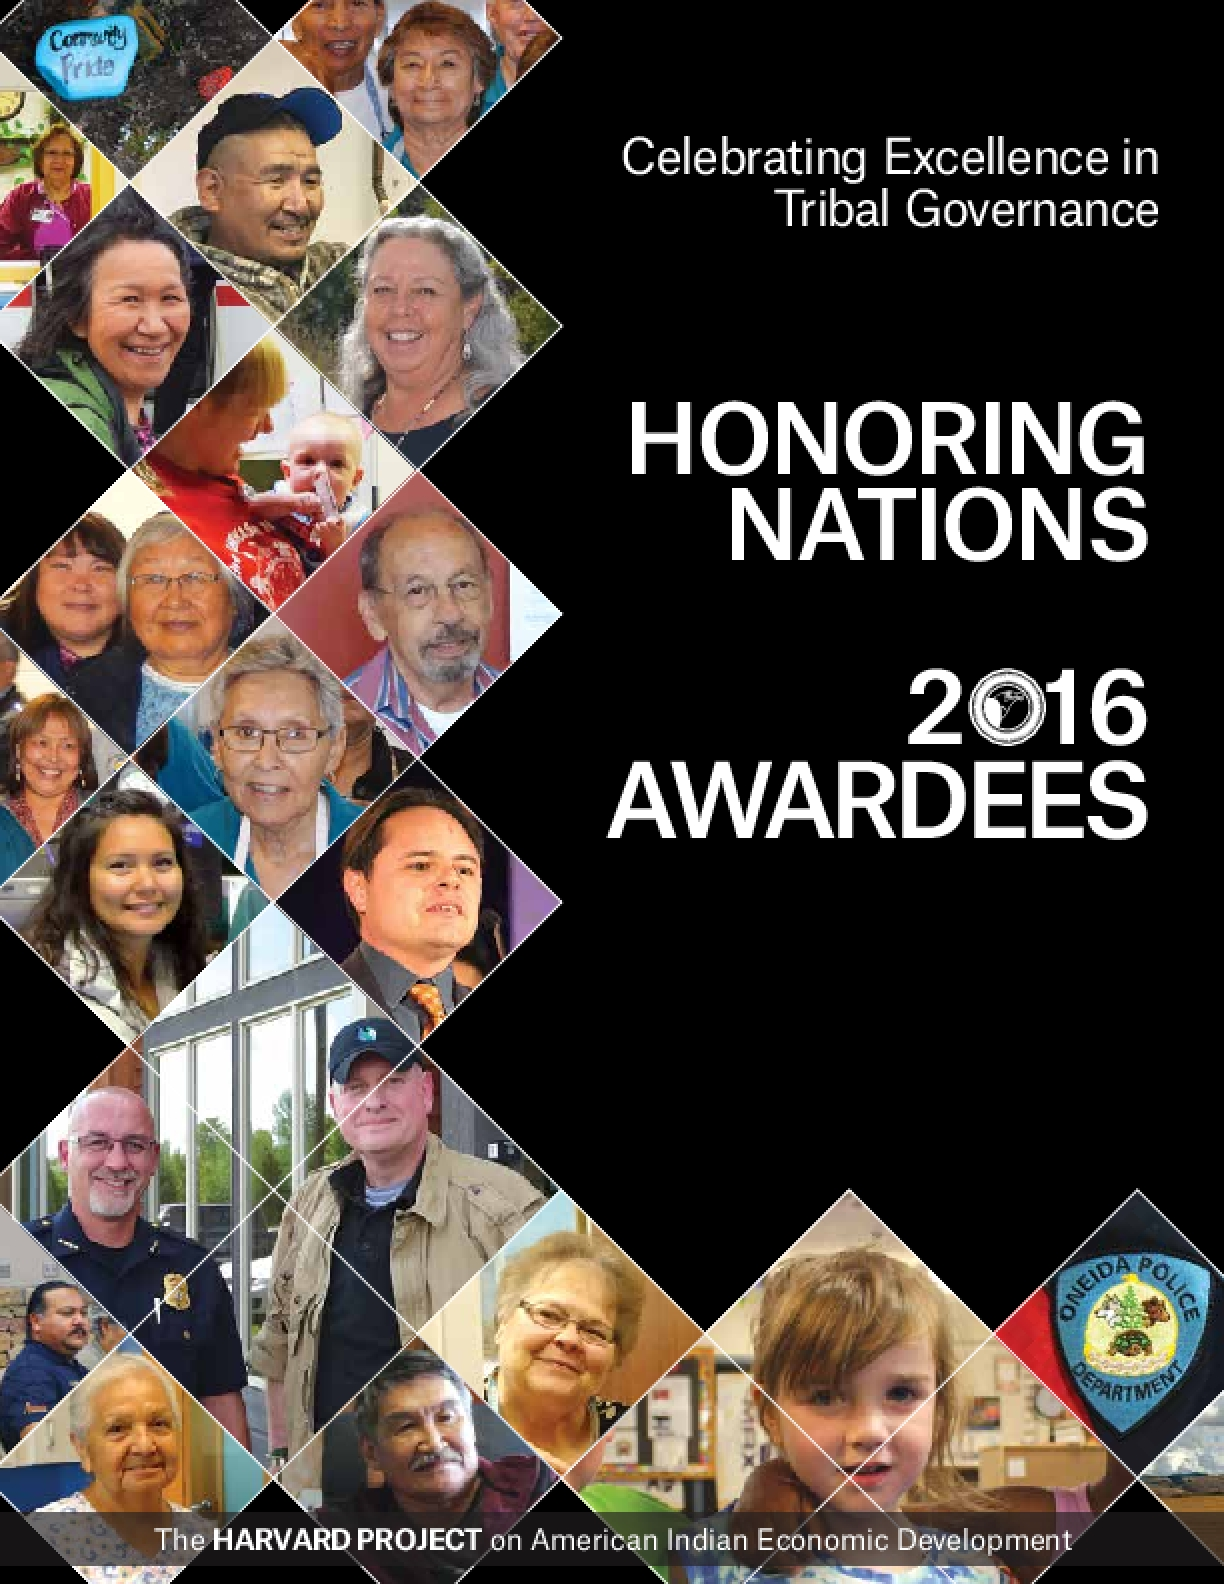 Celebrating Excellence in Tribal Governance